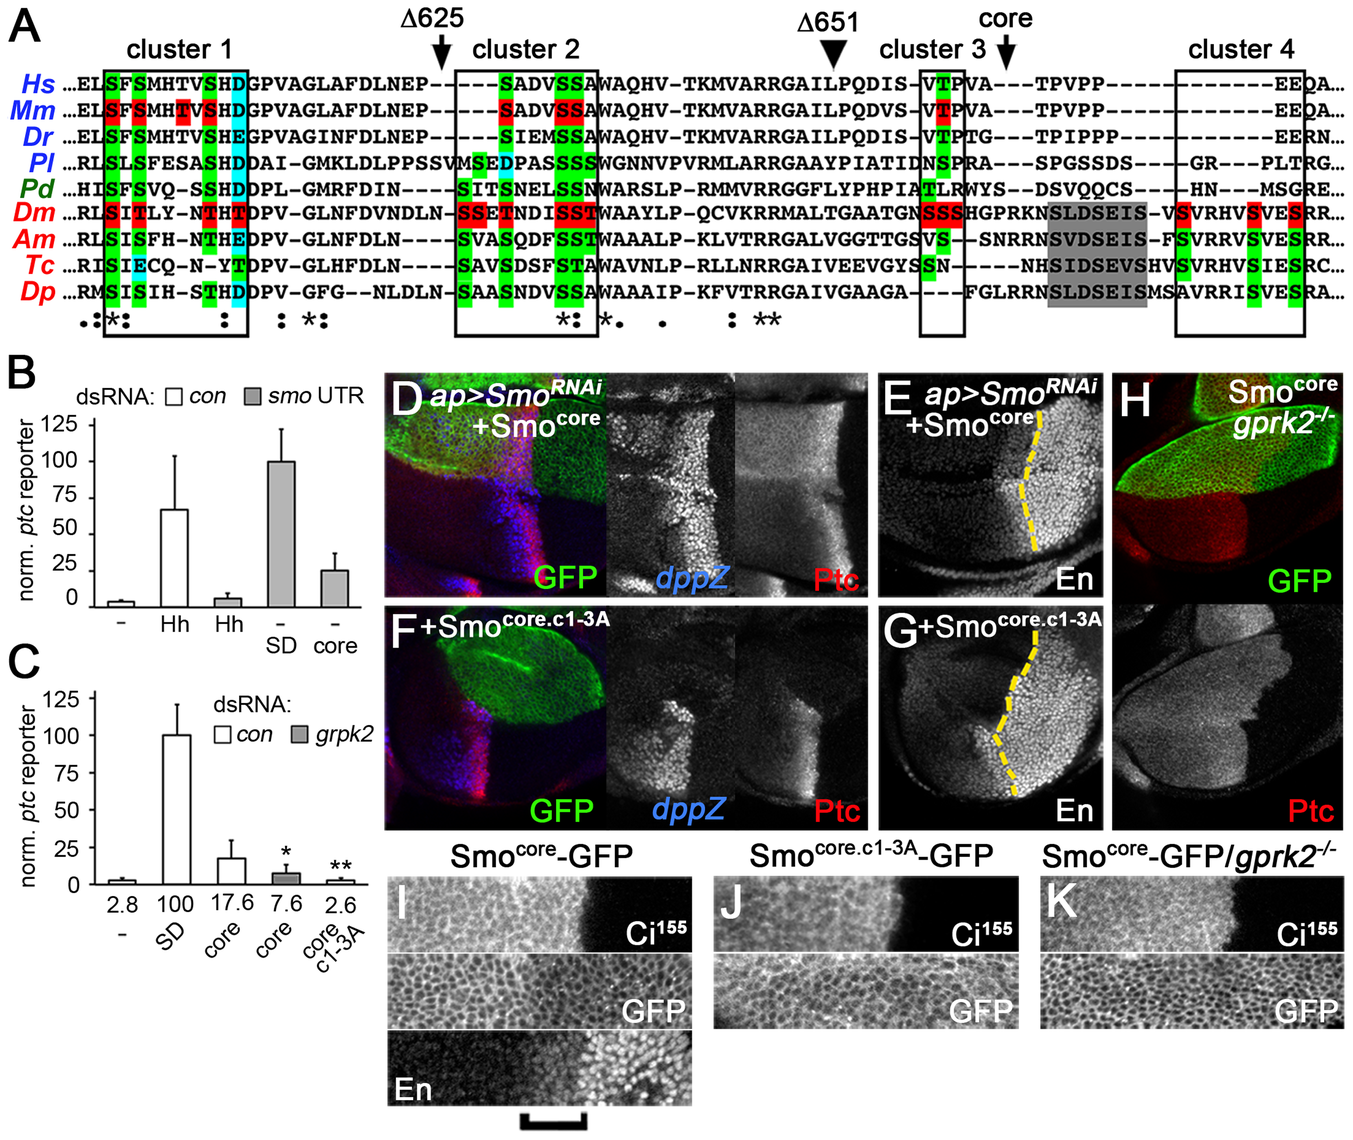 The conserved core of Smo is a GRK-regulated, signaling-competent protein.